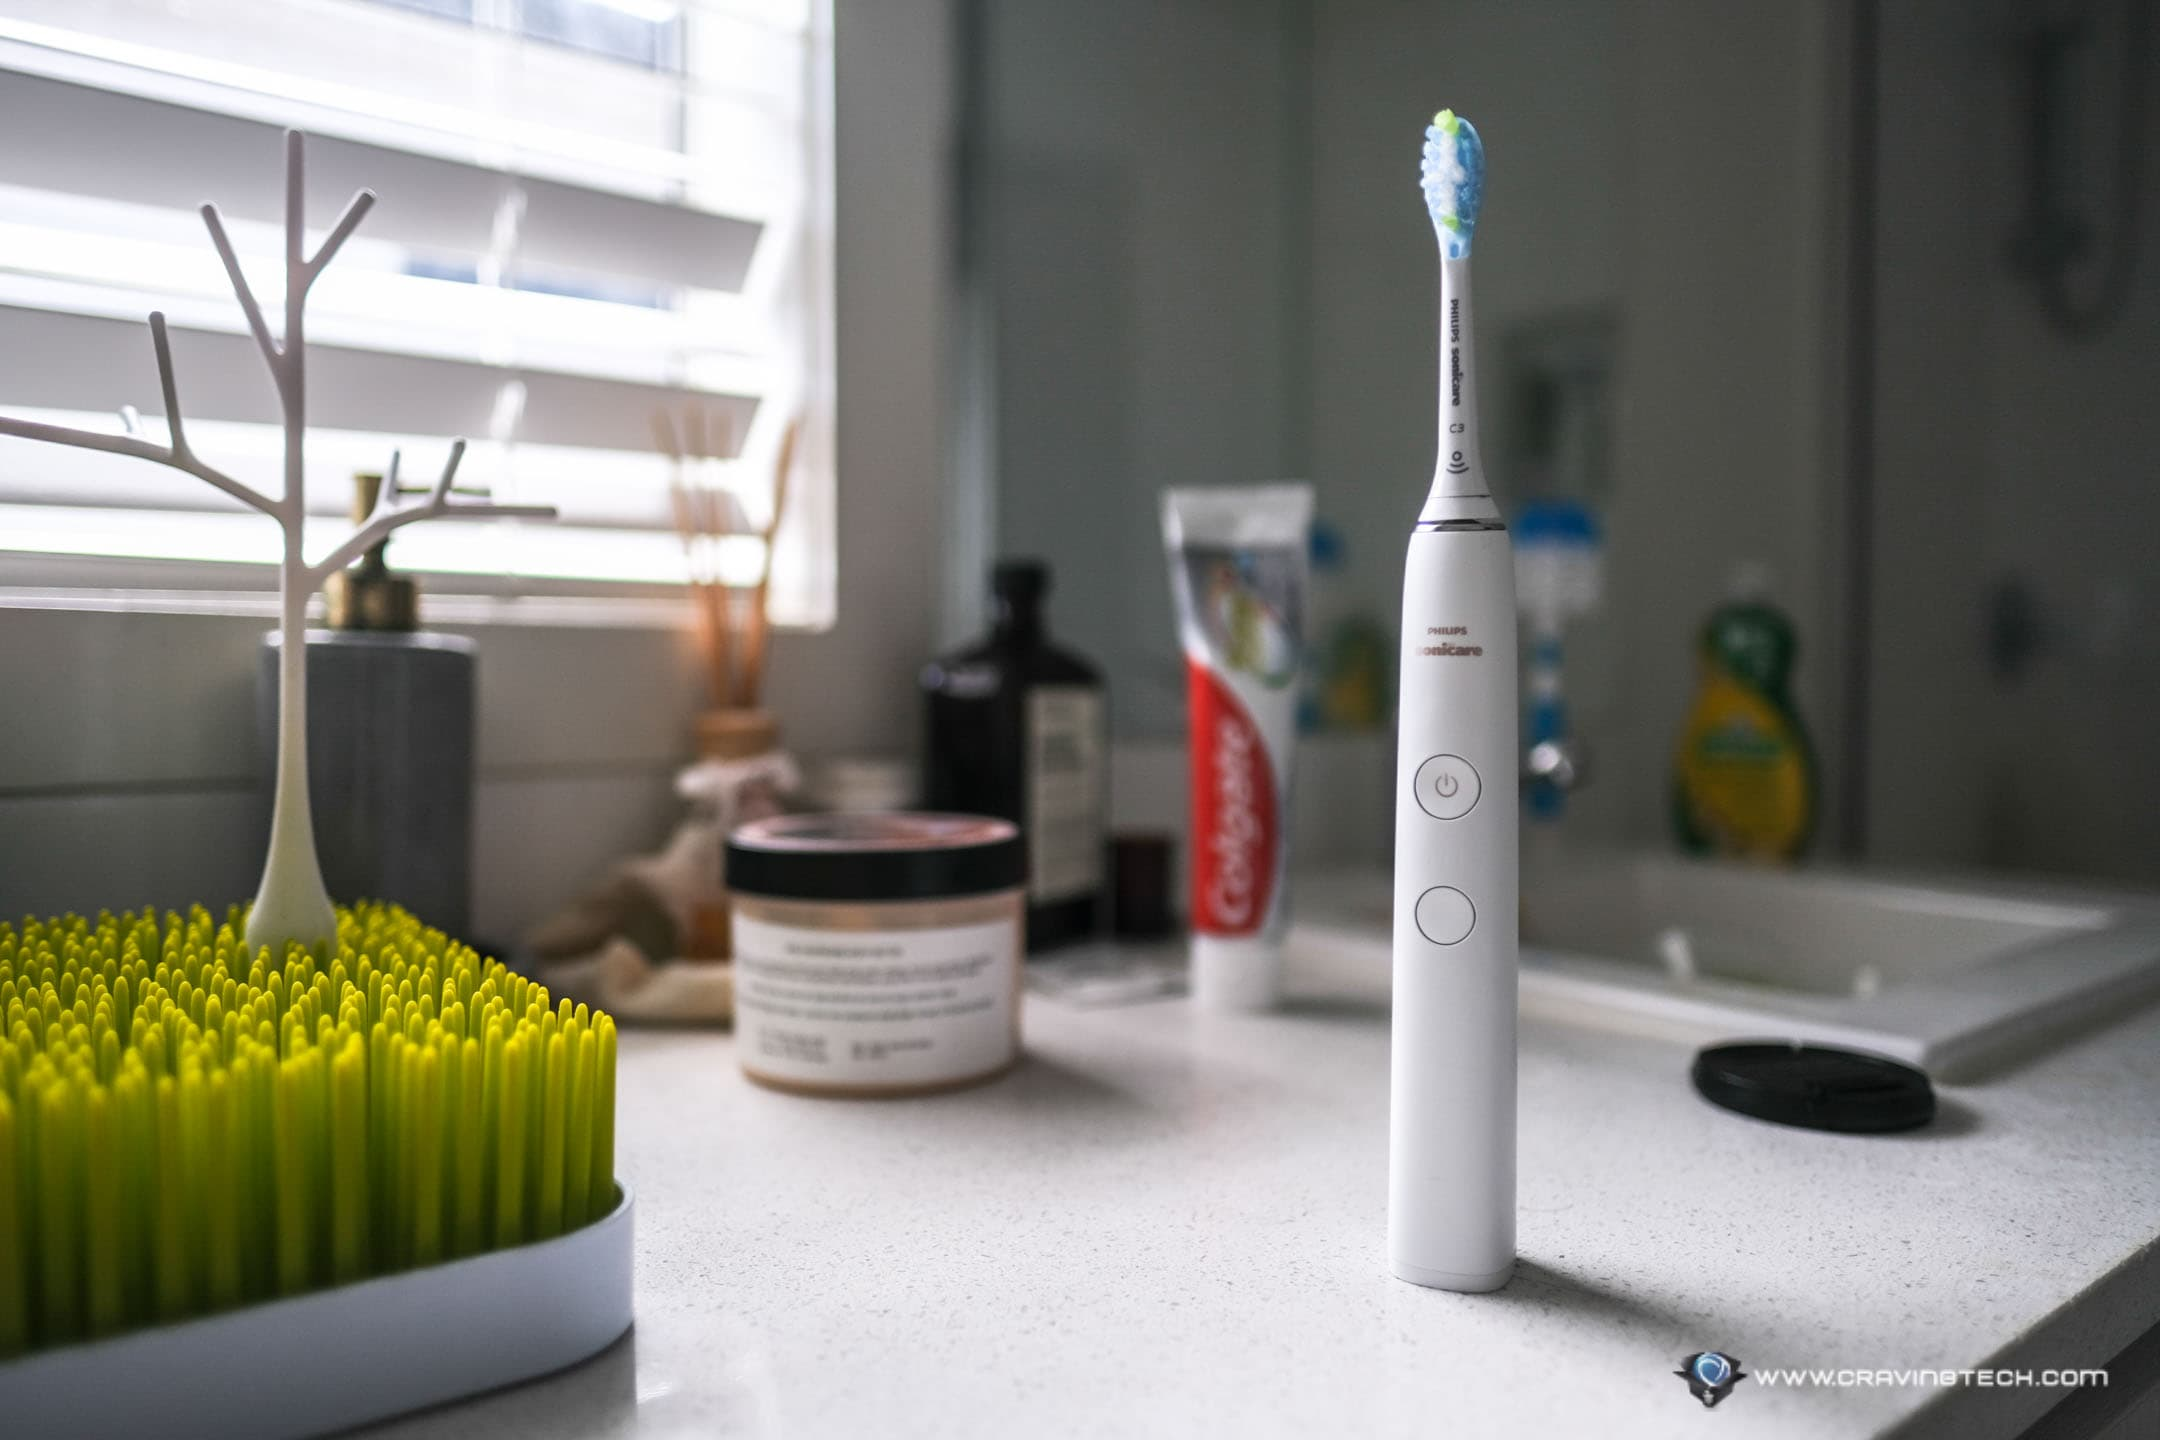 The best electric toothbrush? Philips Sonicare DiamondClean 9000 Review